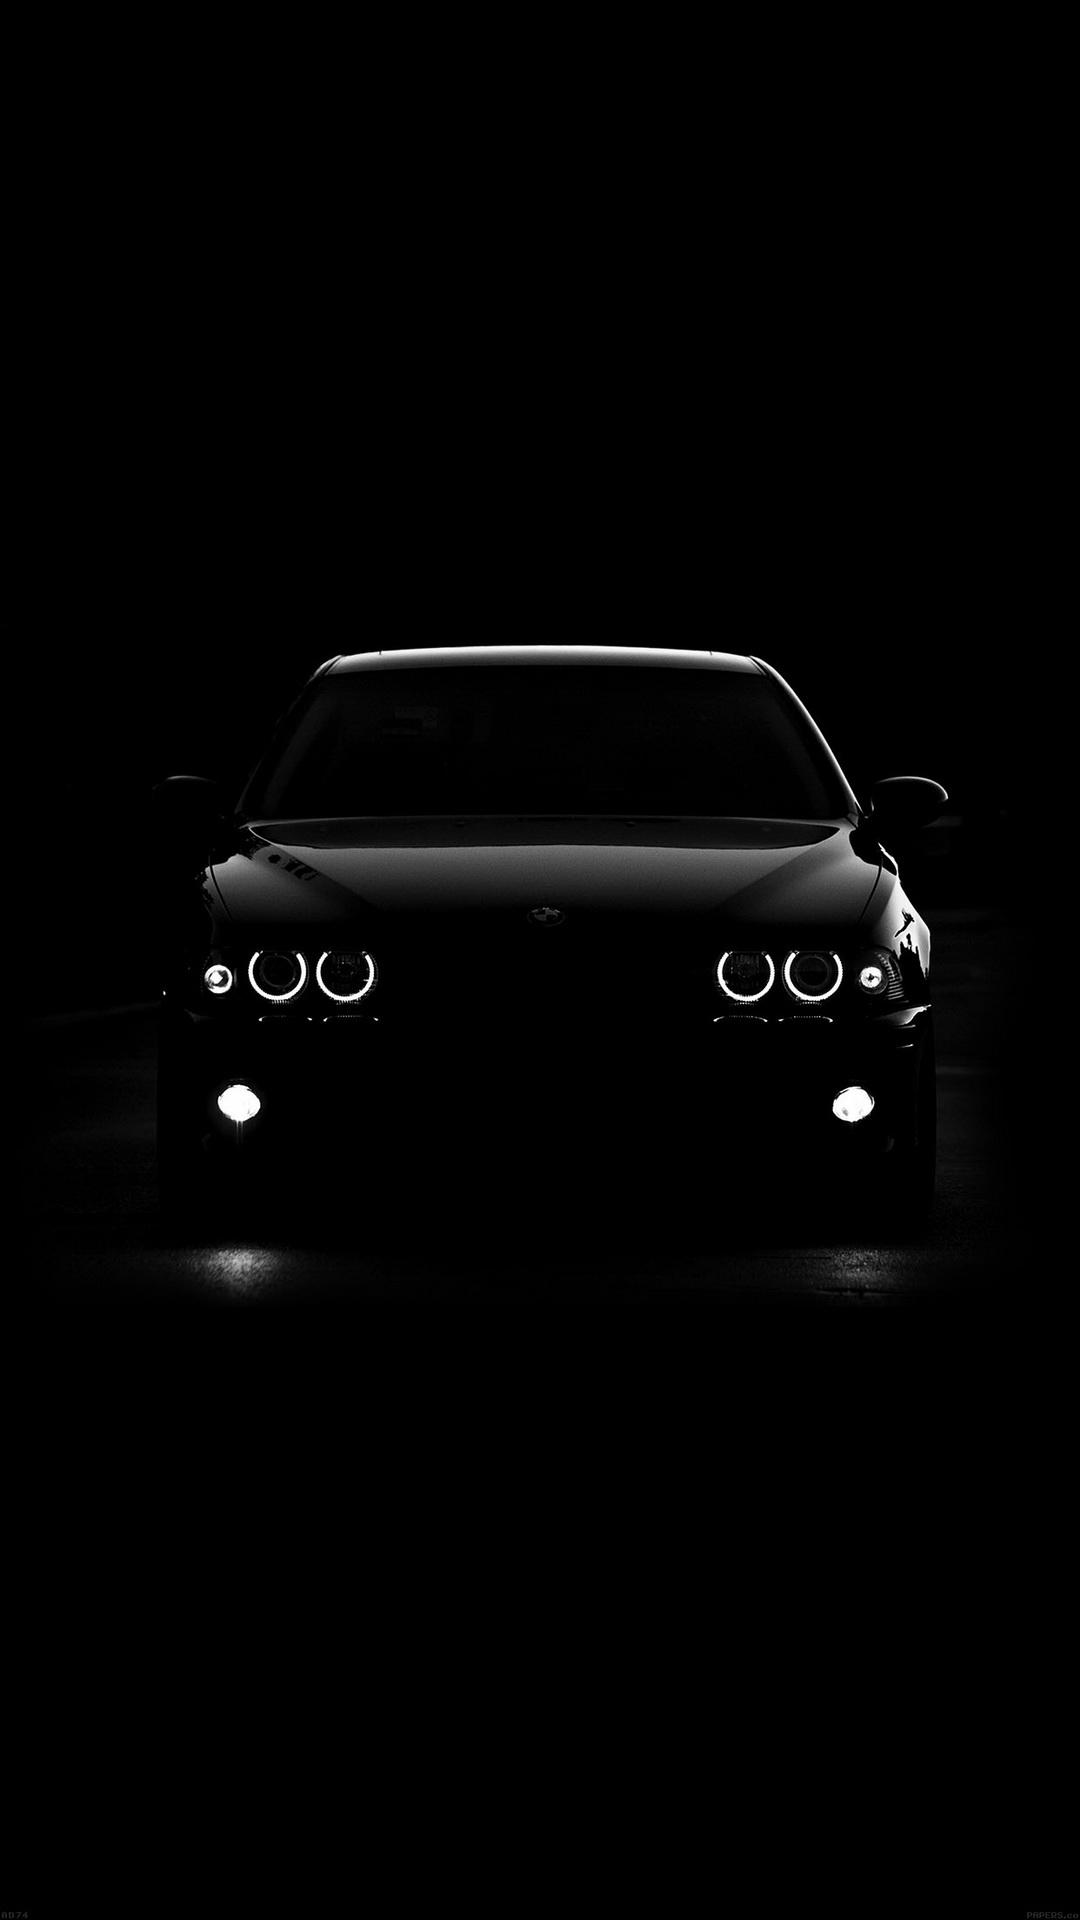 1080x1920 Cars Wallpapers Wallpaper Cave